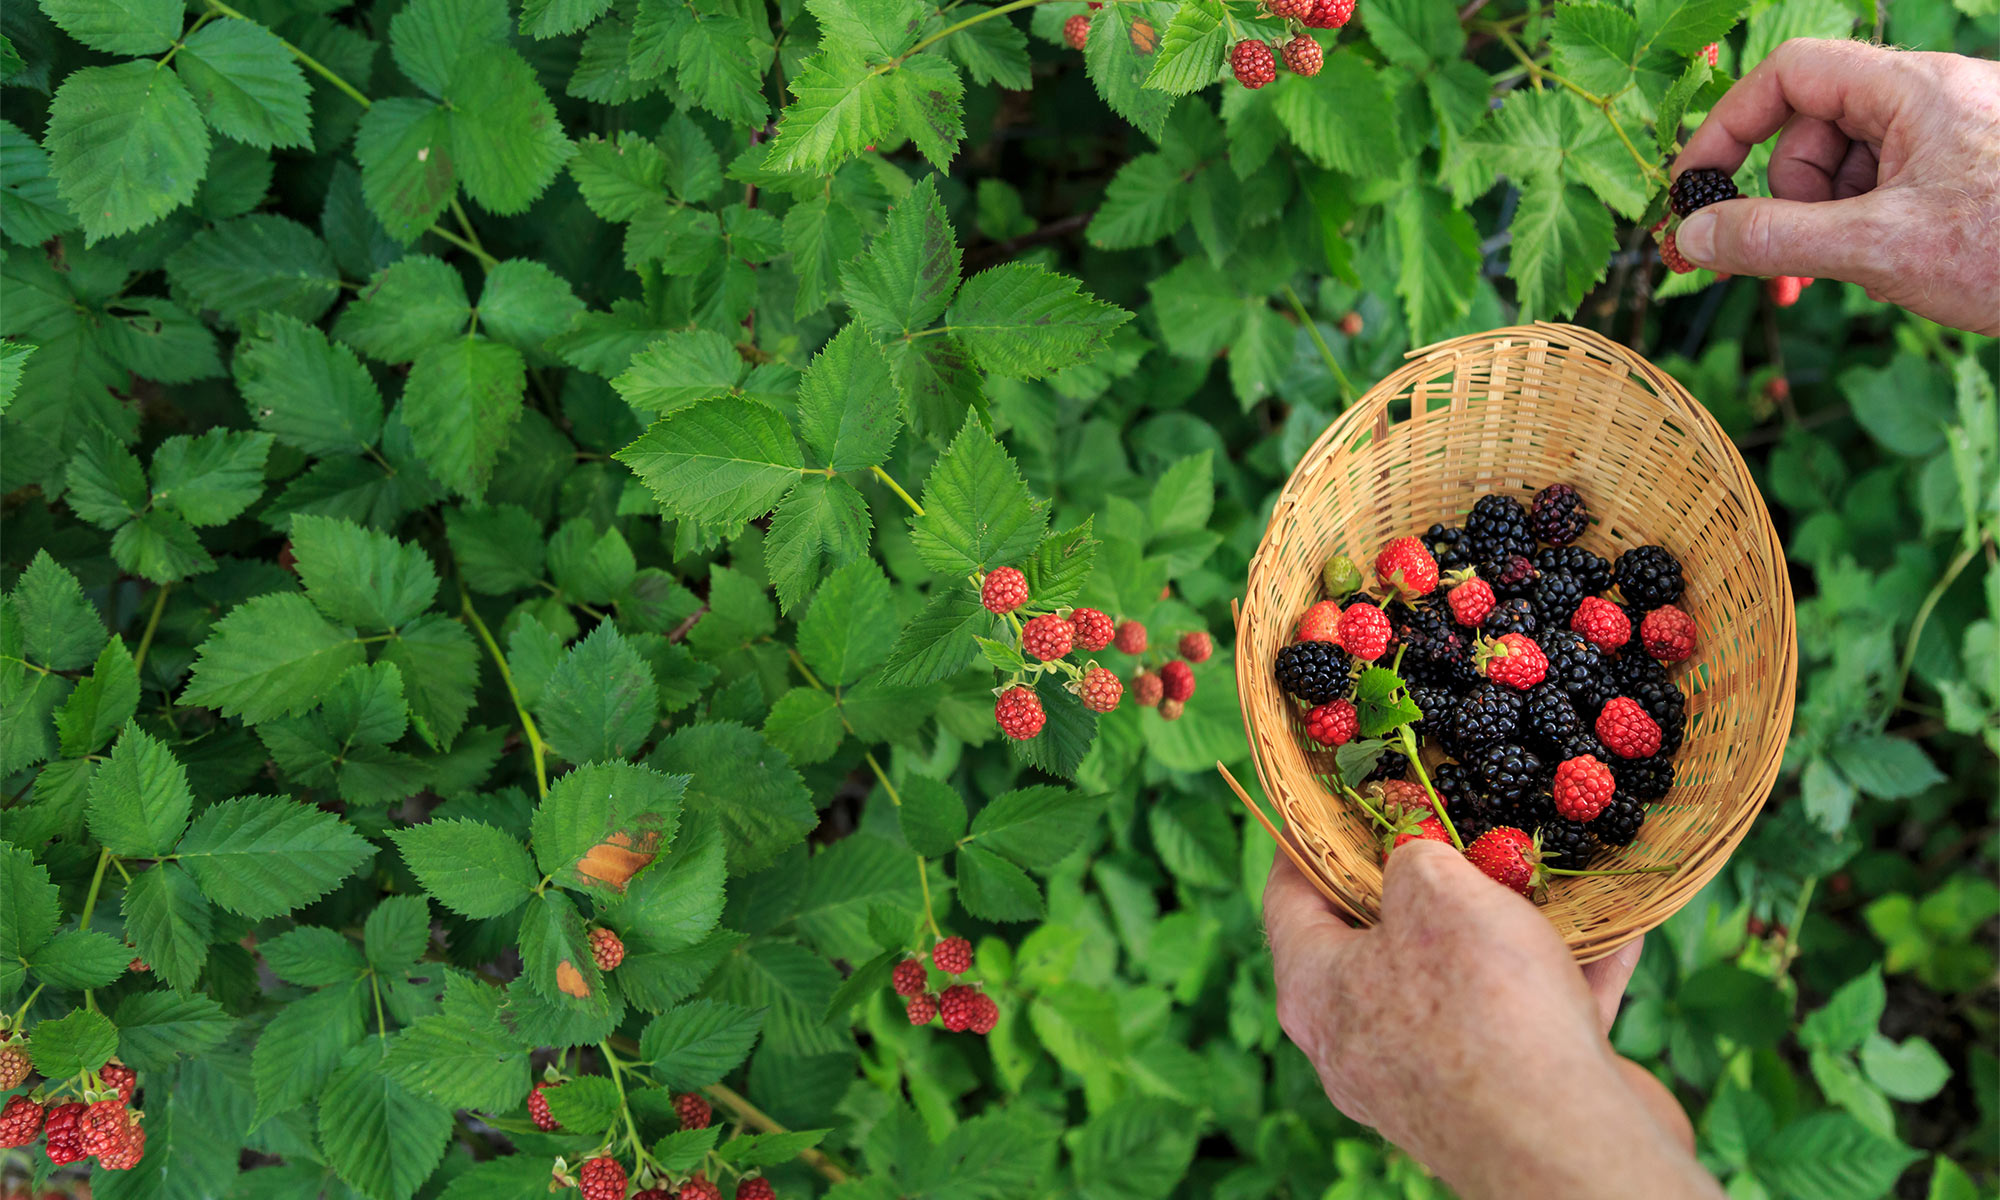 Hands picking raspberries and blackberries.